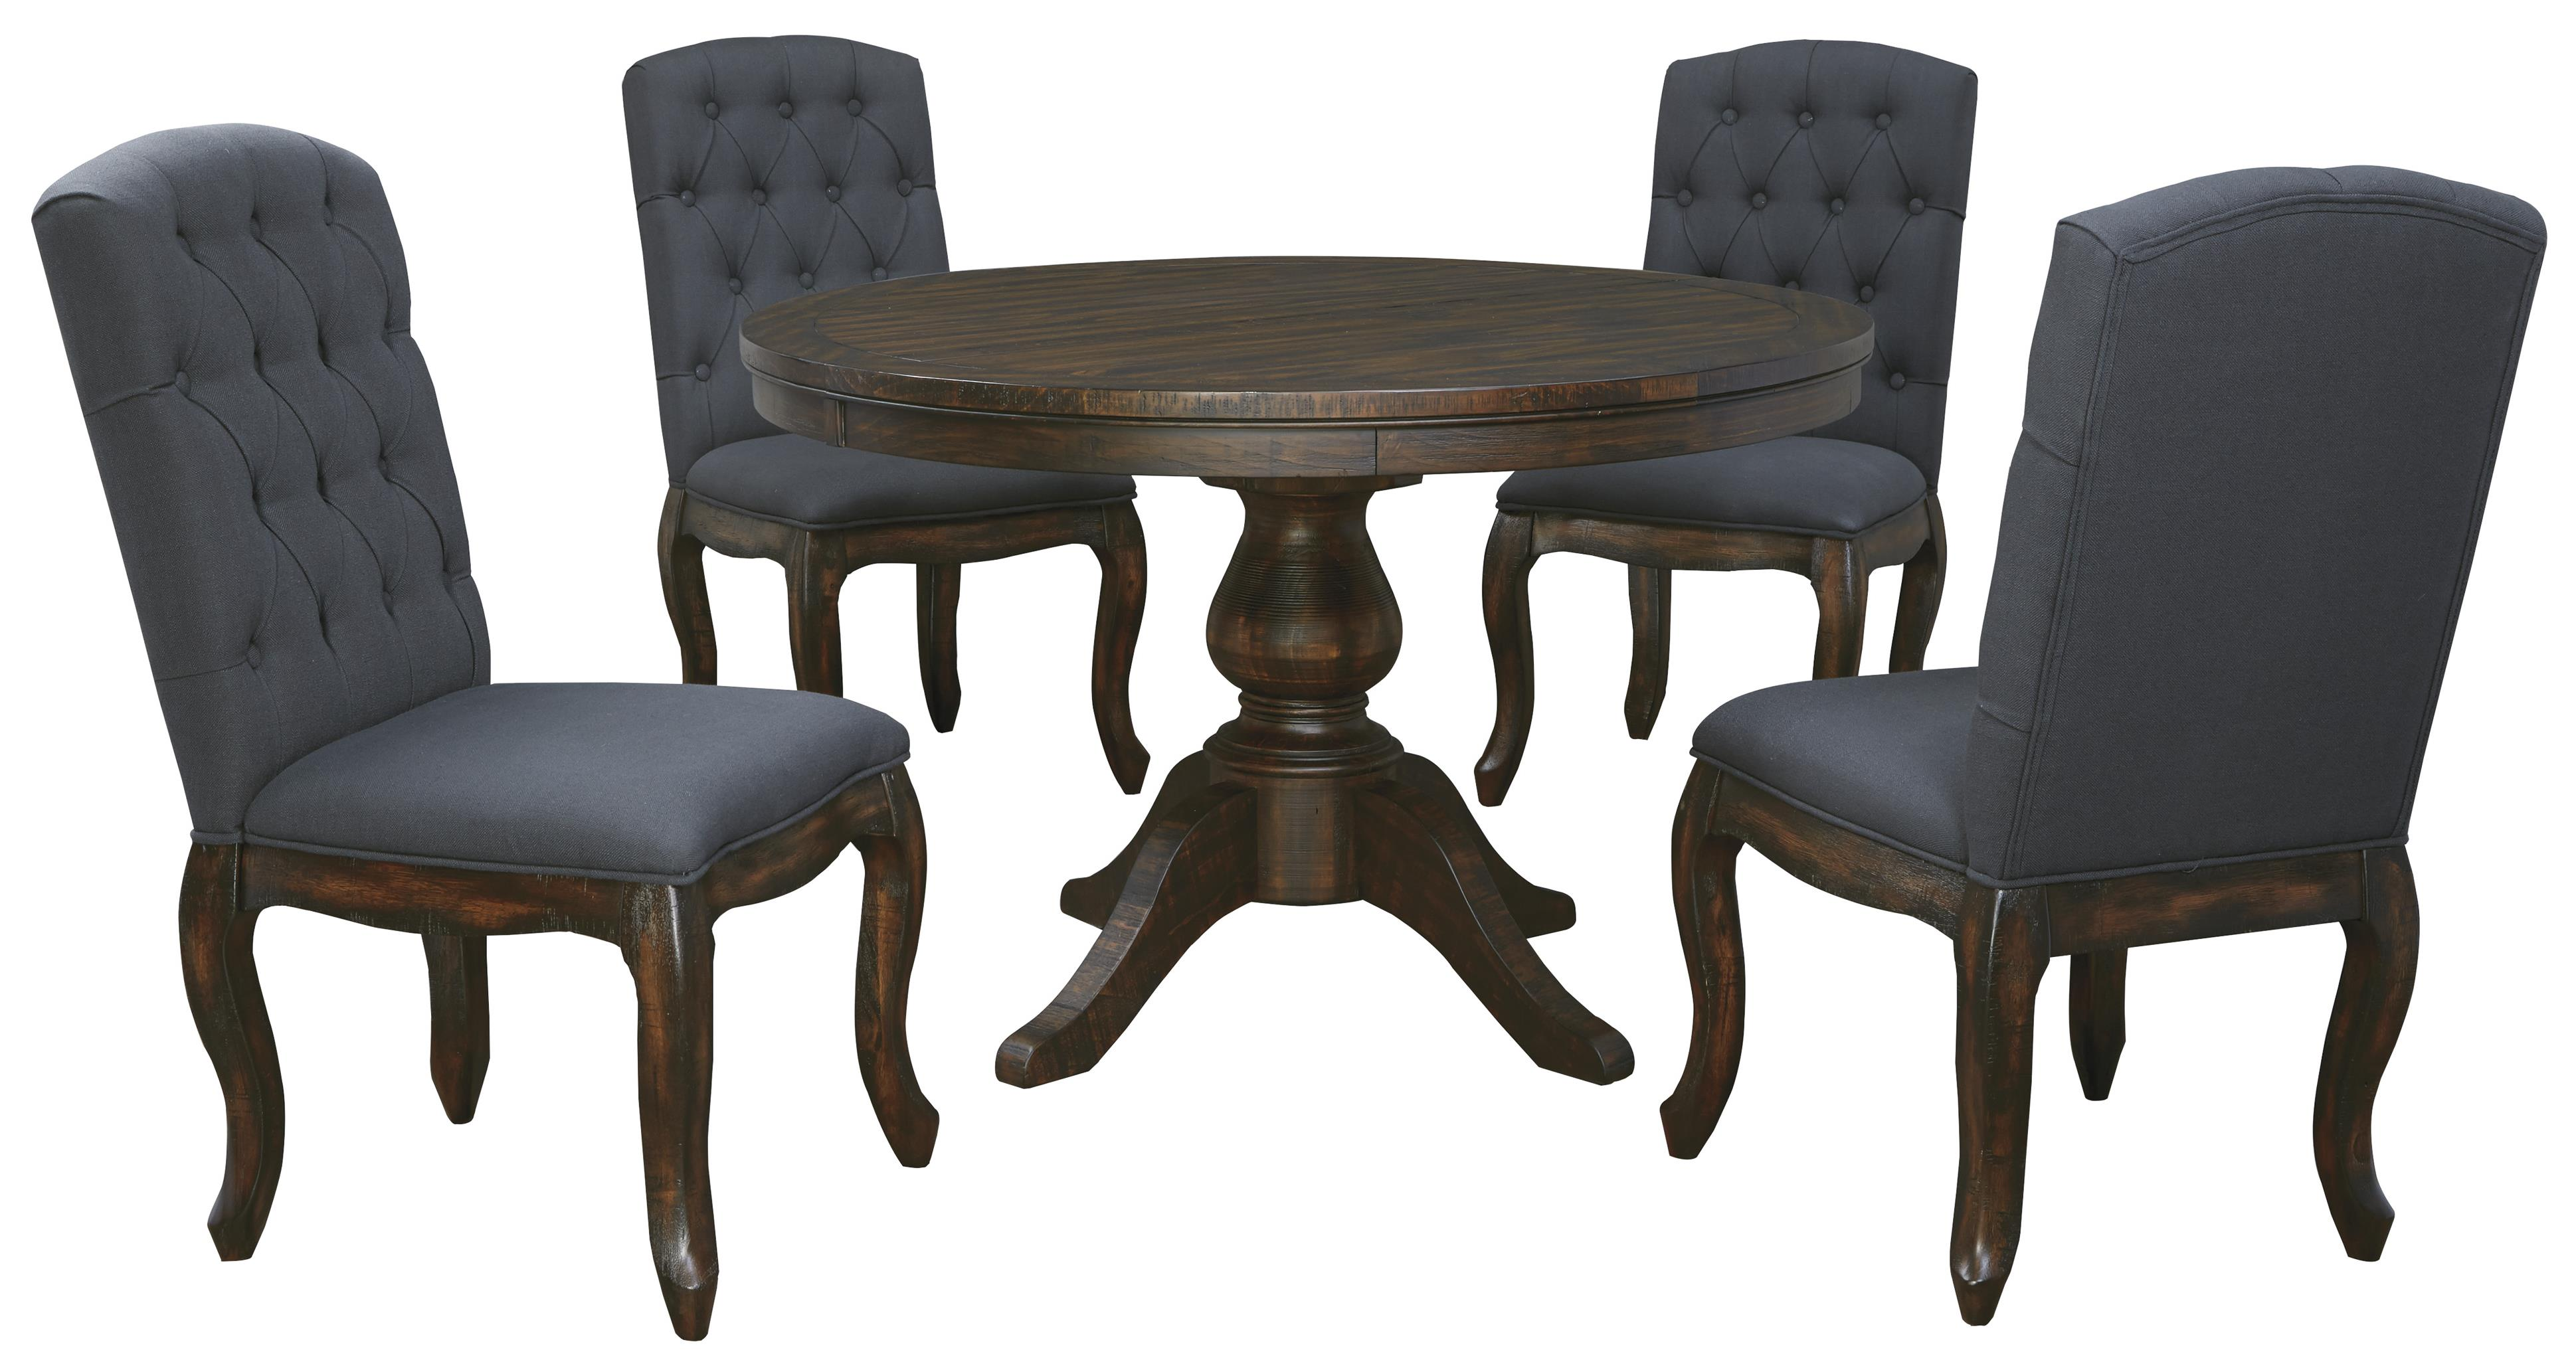 Signature design by ashley trudell 5 piece round dining table set with upholstered side chairs Round dining table set